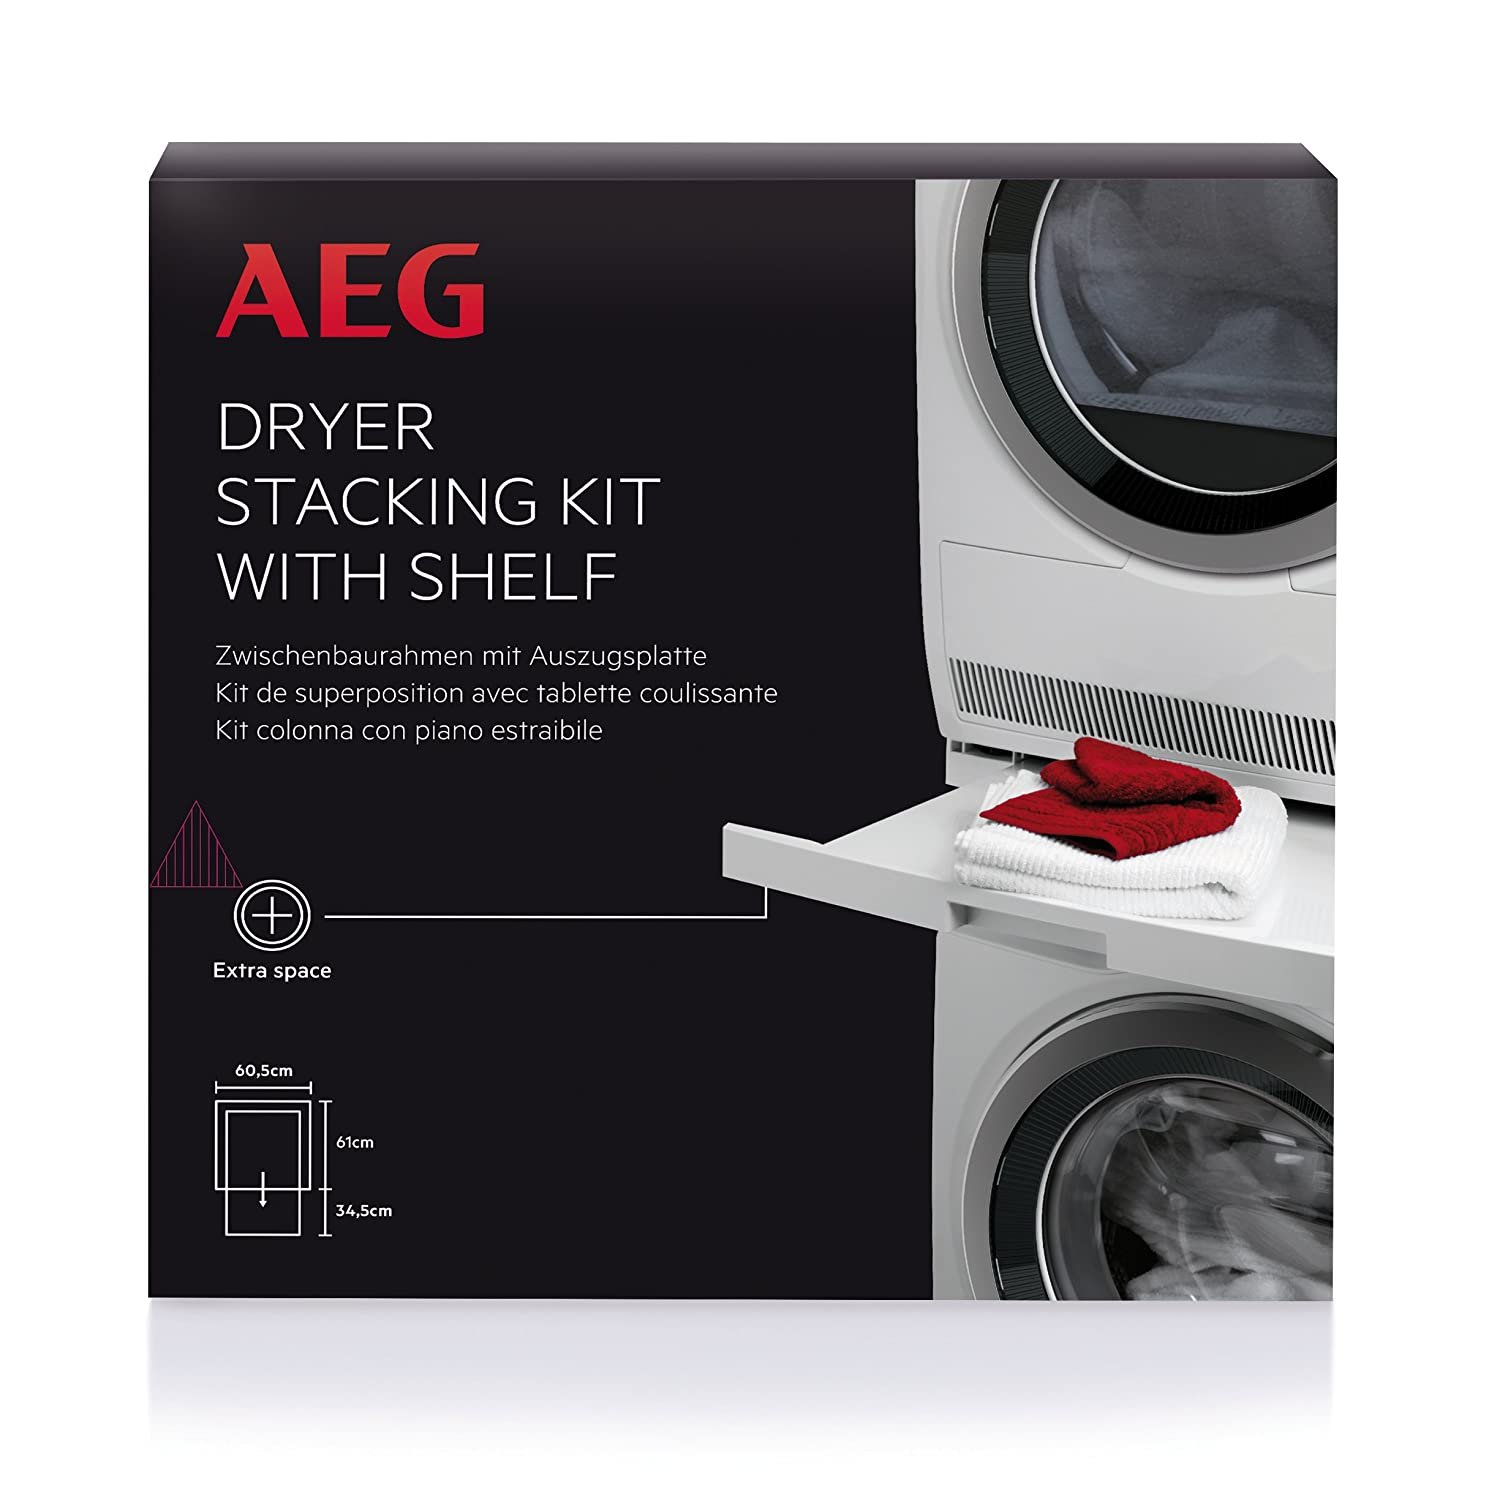 Electrolux AEG SKP11 Tumble Dryer Stack Kit with pull out shelf